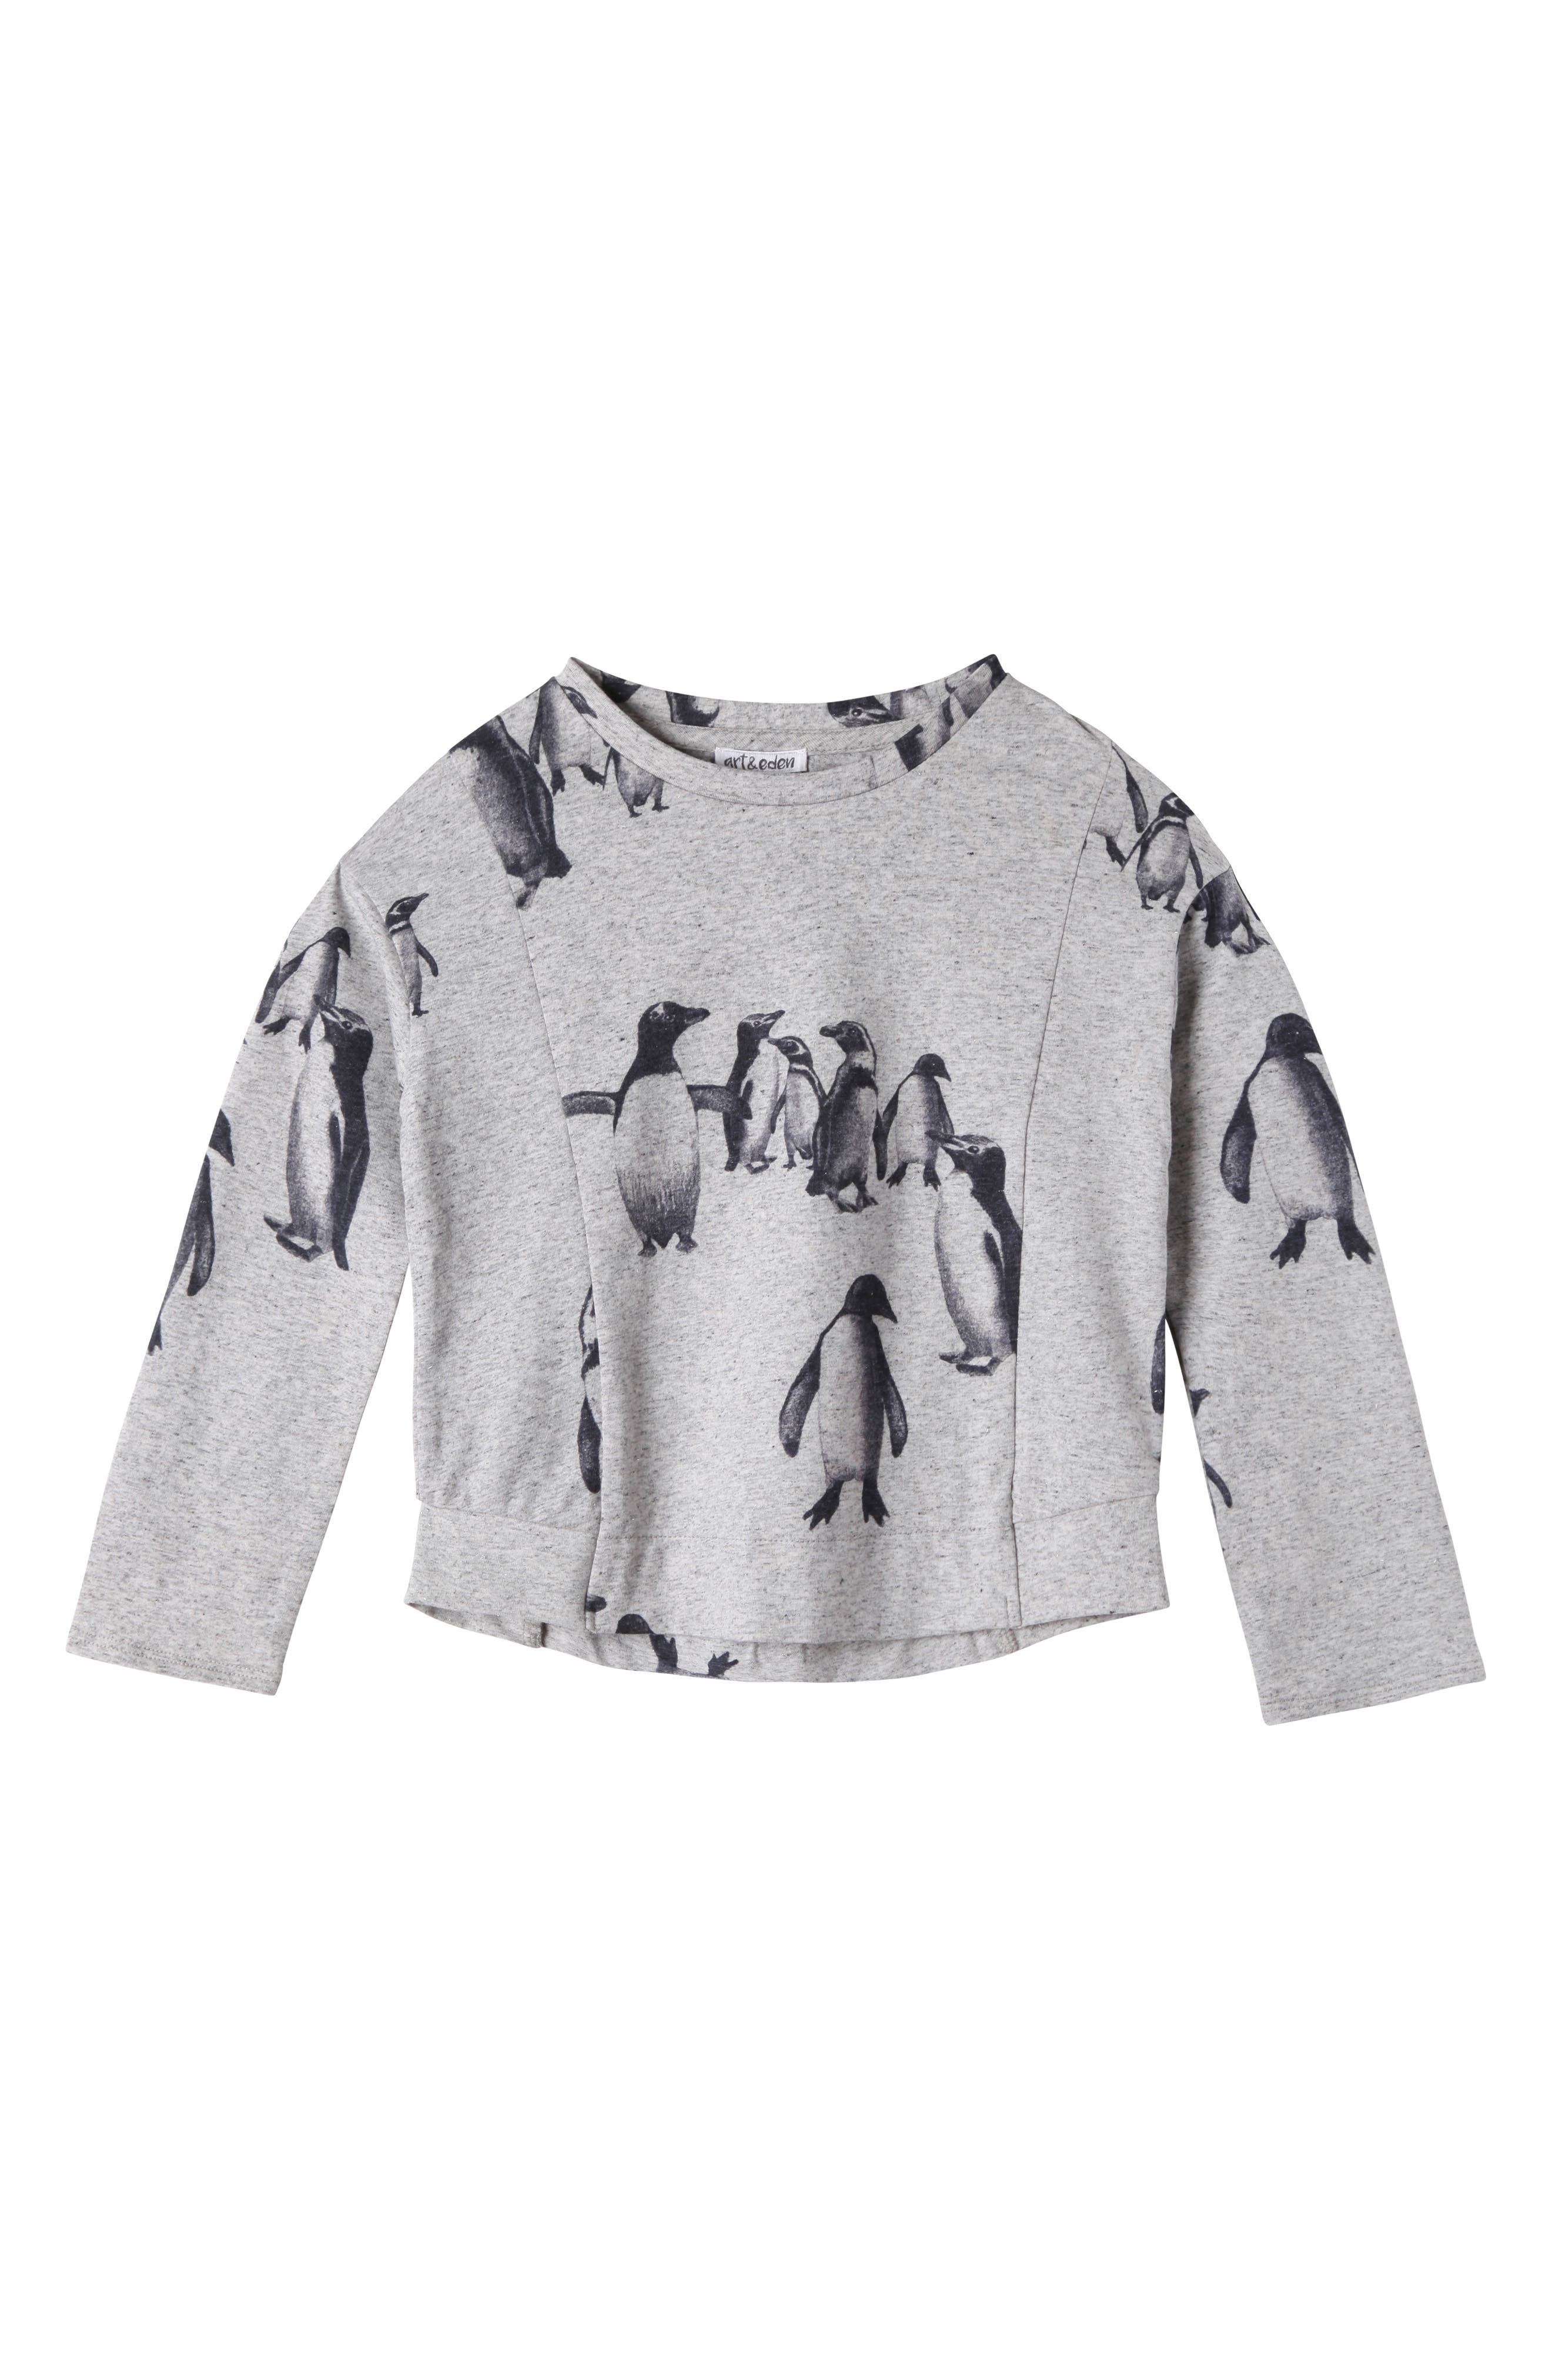 Alternate Image 1 Selected - Art & Eden Eva Penguin Print Tee (Toddler Girls & Little Girls)